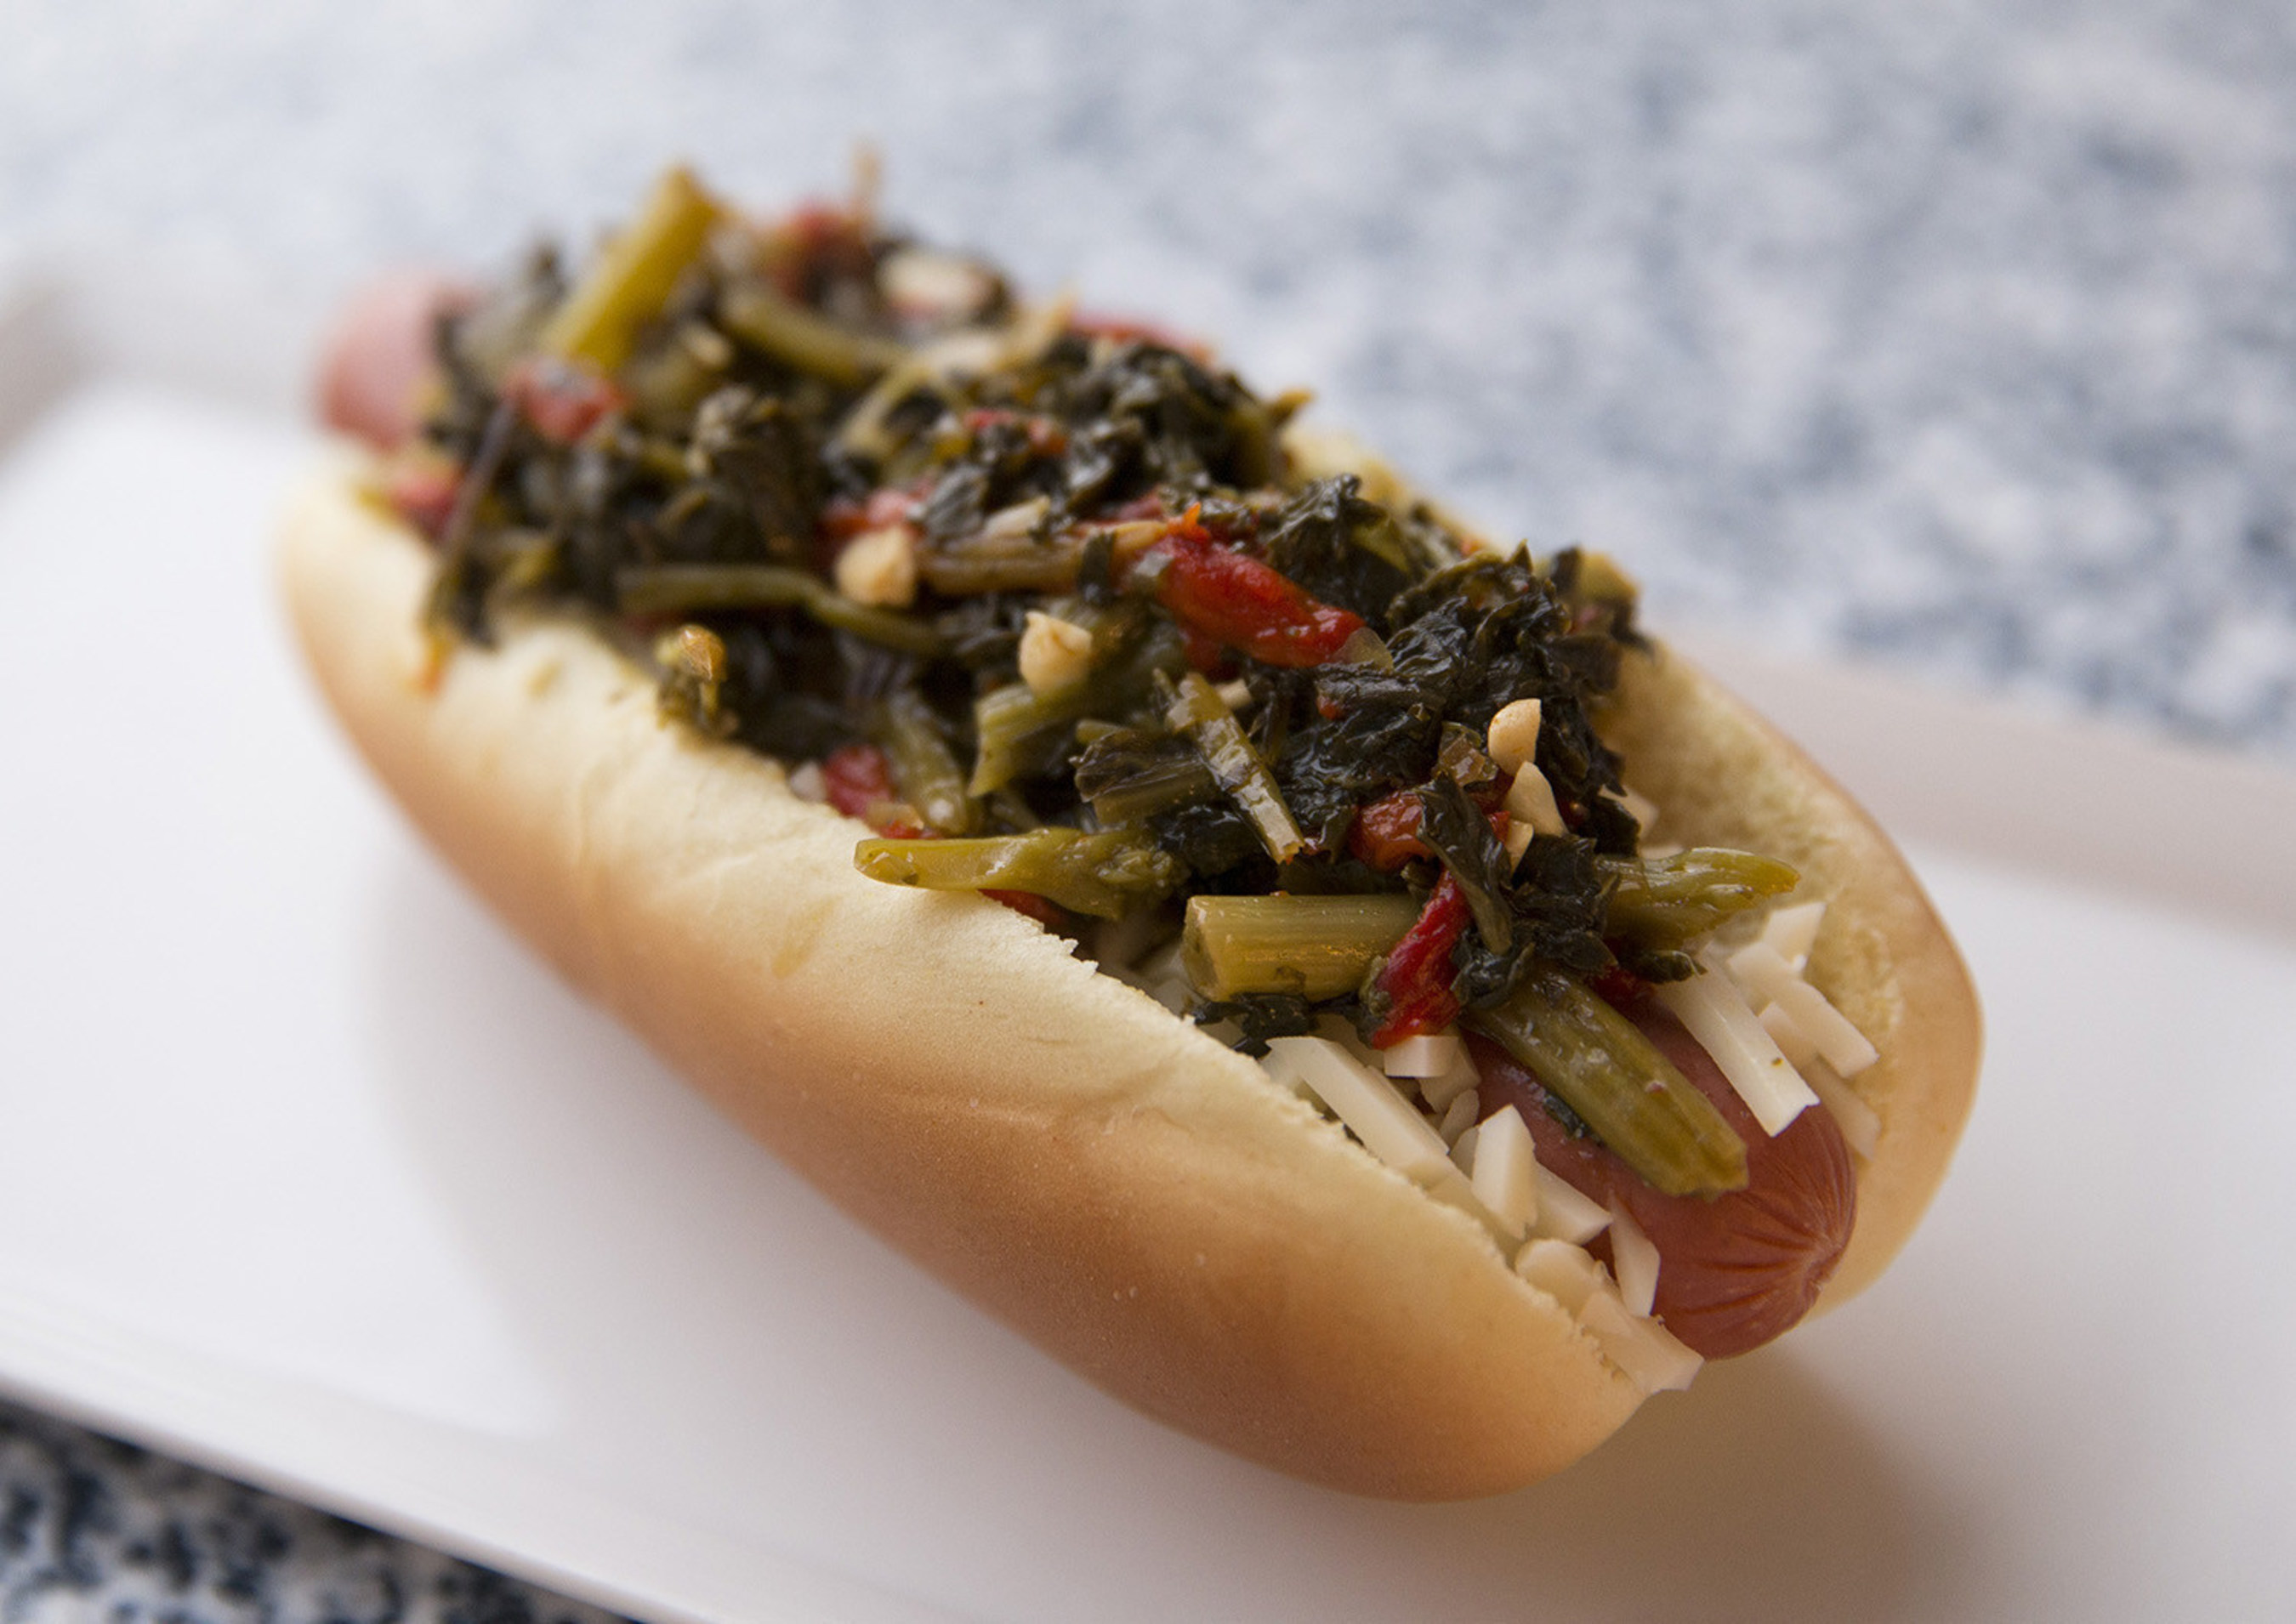 Aramark is celebrating National Hot Dog Month with a delicious roster of gourmet hot dogs, including the South Philly Dog, from Citizens Bank Park.